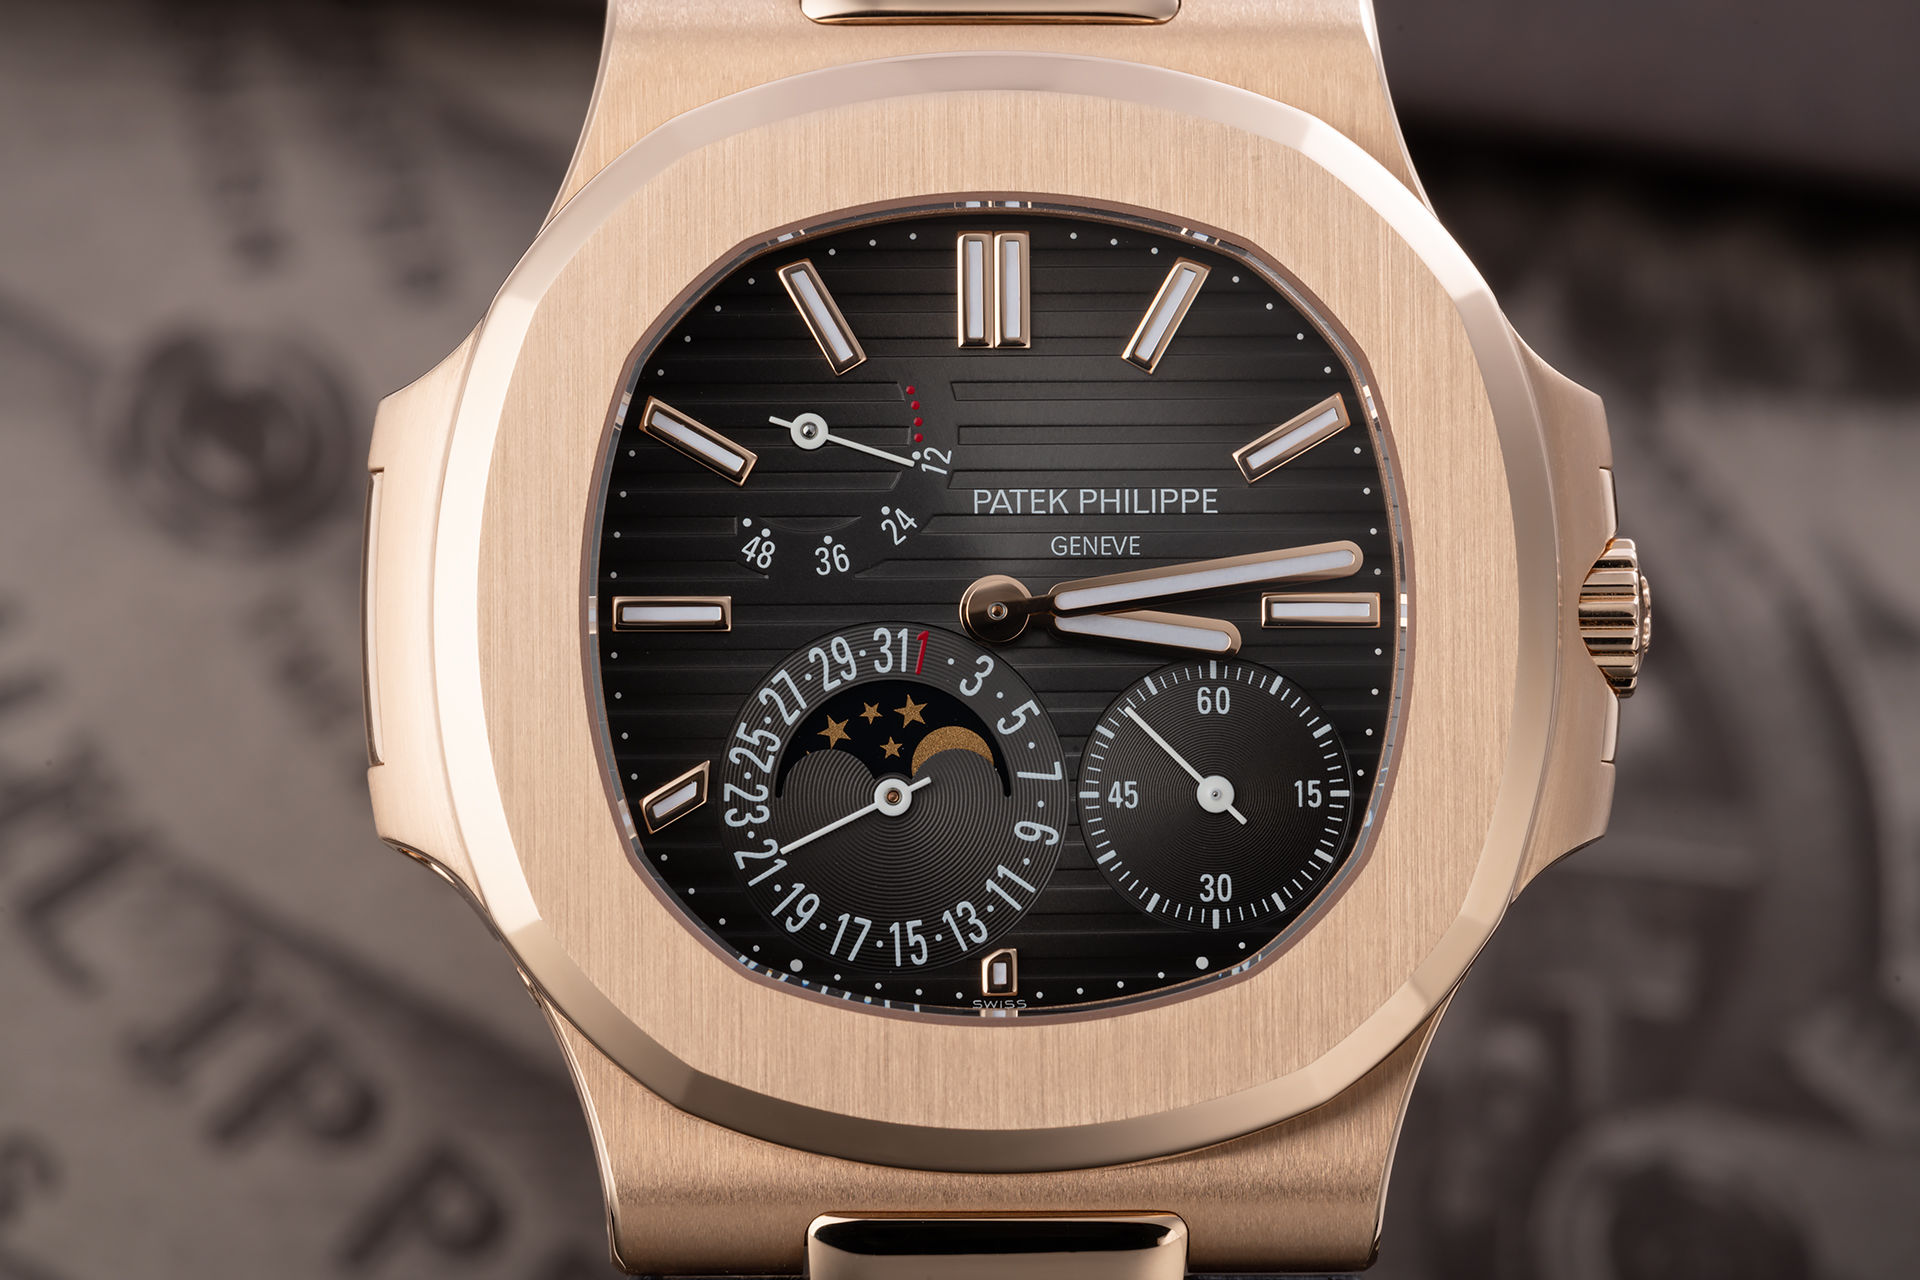 ref 5712R-001 | 'Complete Set' UK Supplied  | Patek Philippe Nautilus